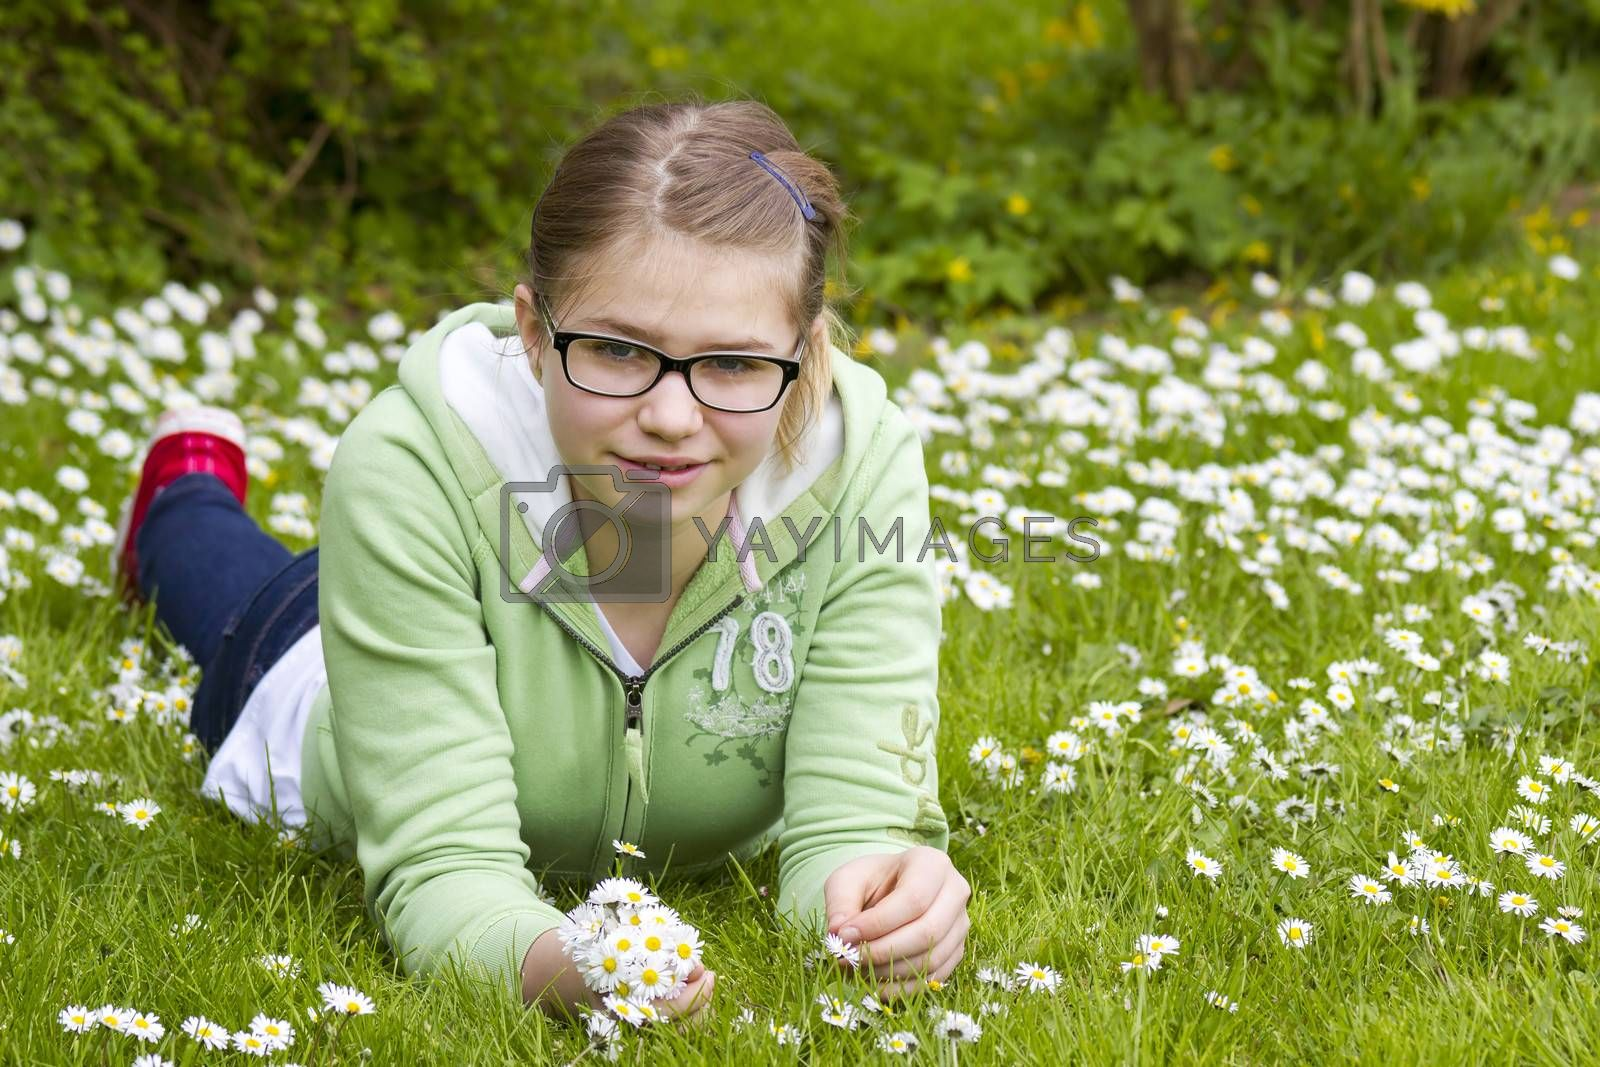 young girl picking daisies by miradrozdowski